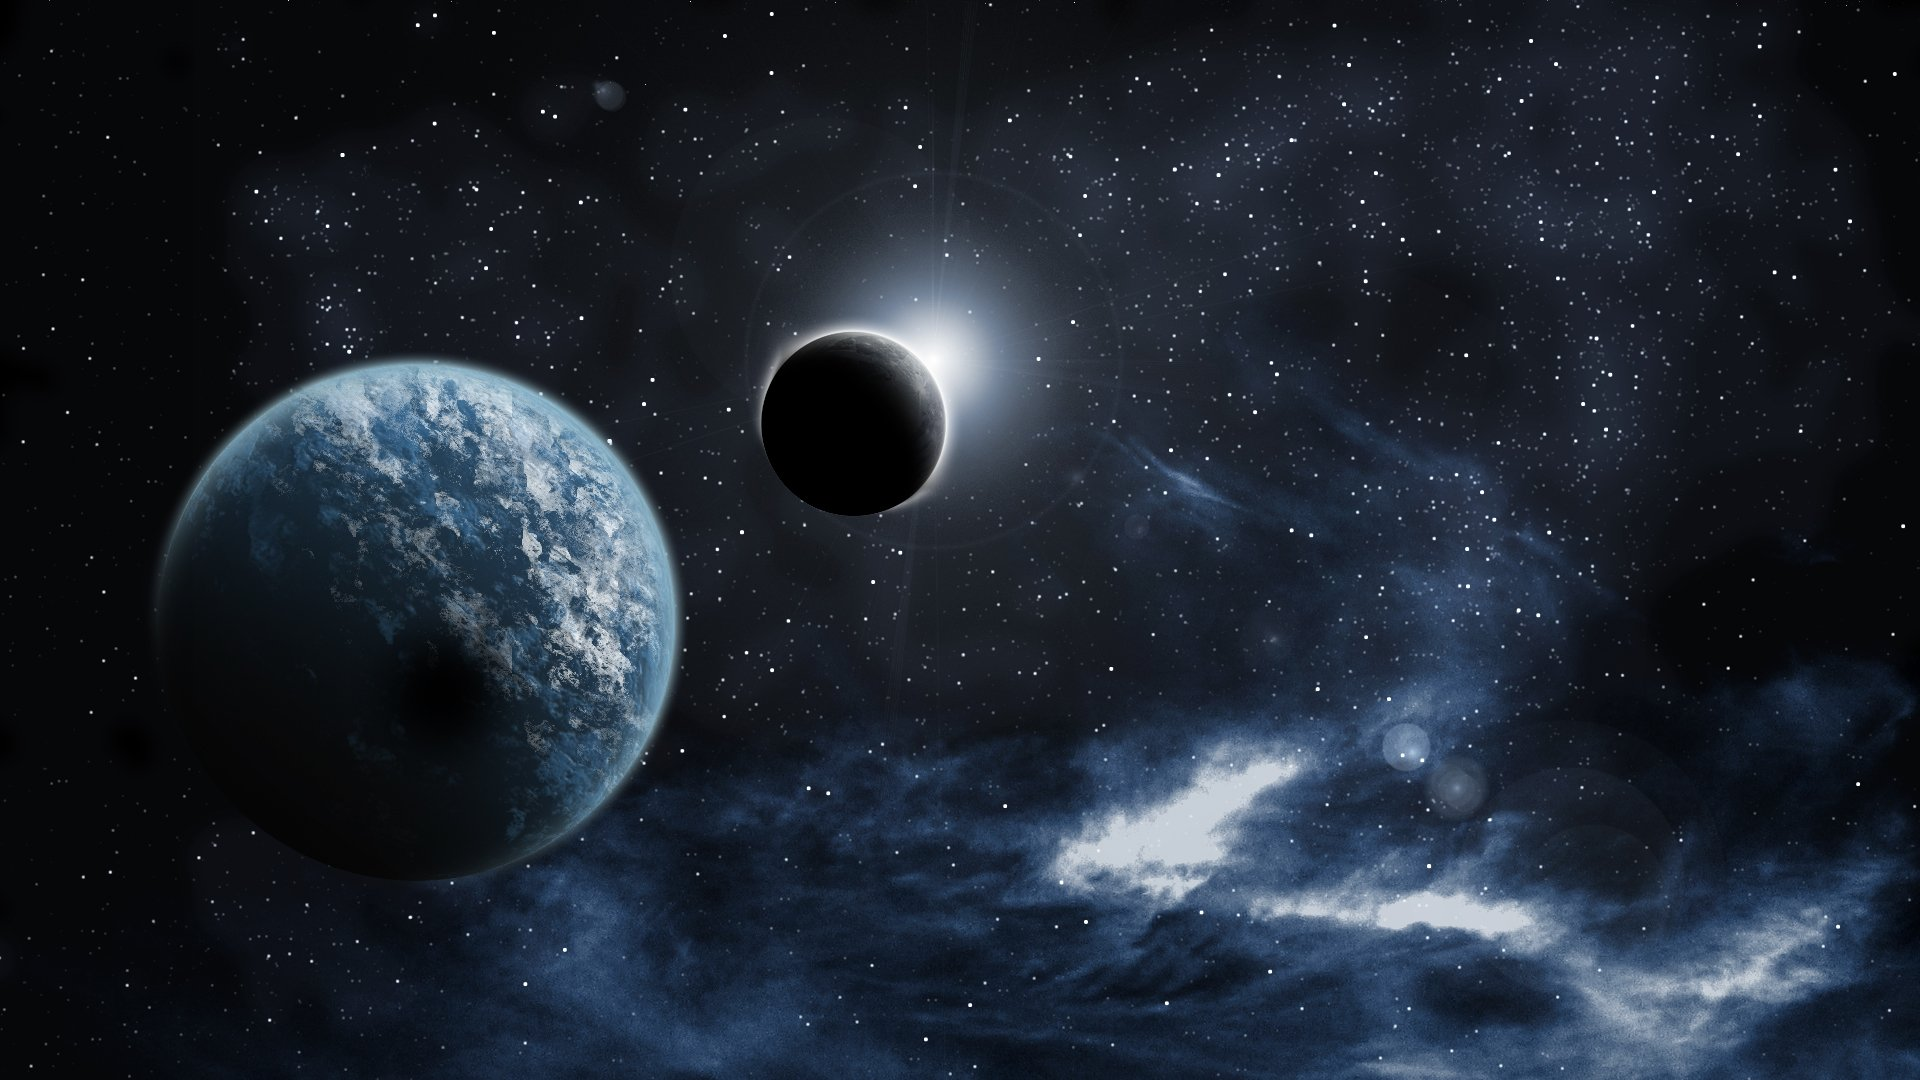 moon Sci Fi Wallpaper Background 39513 1920x1080